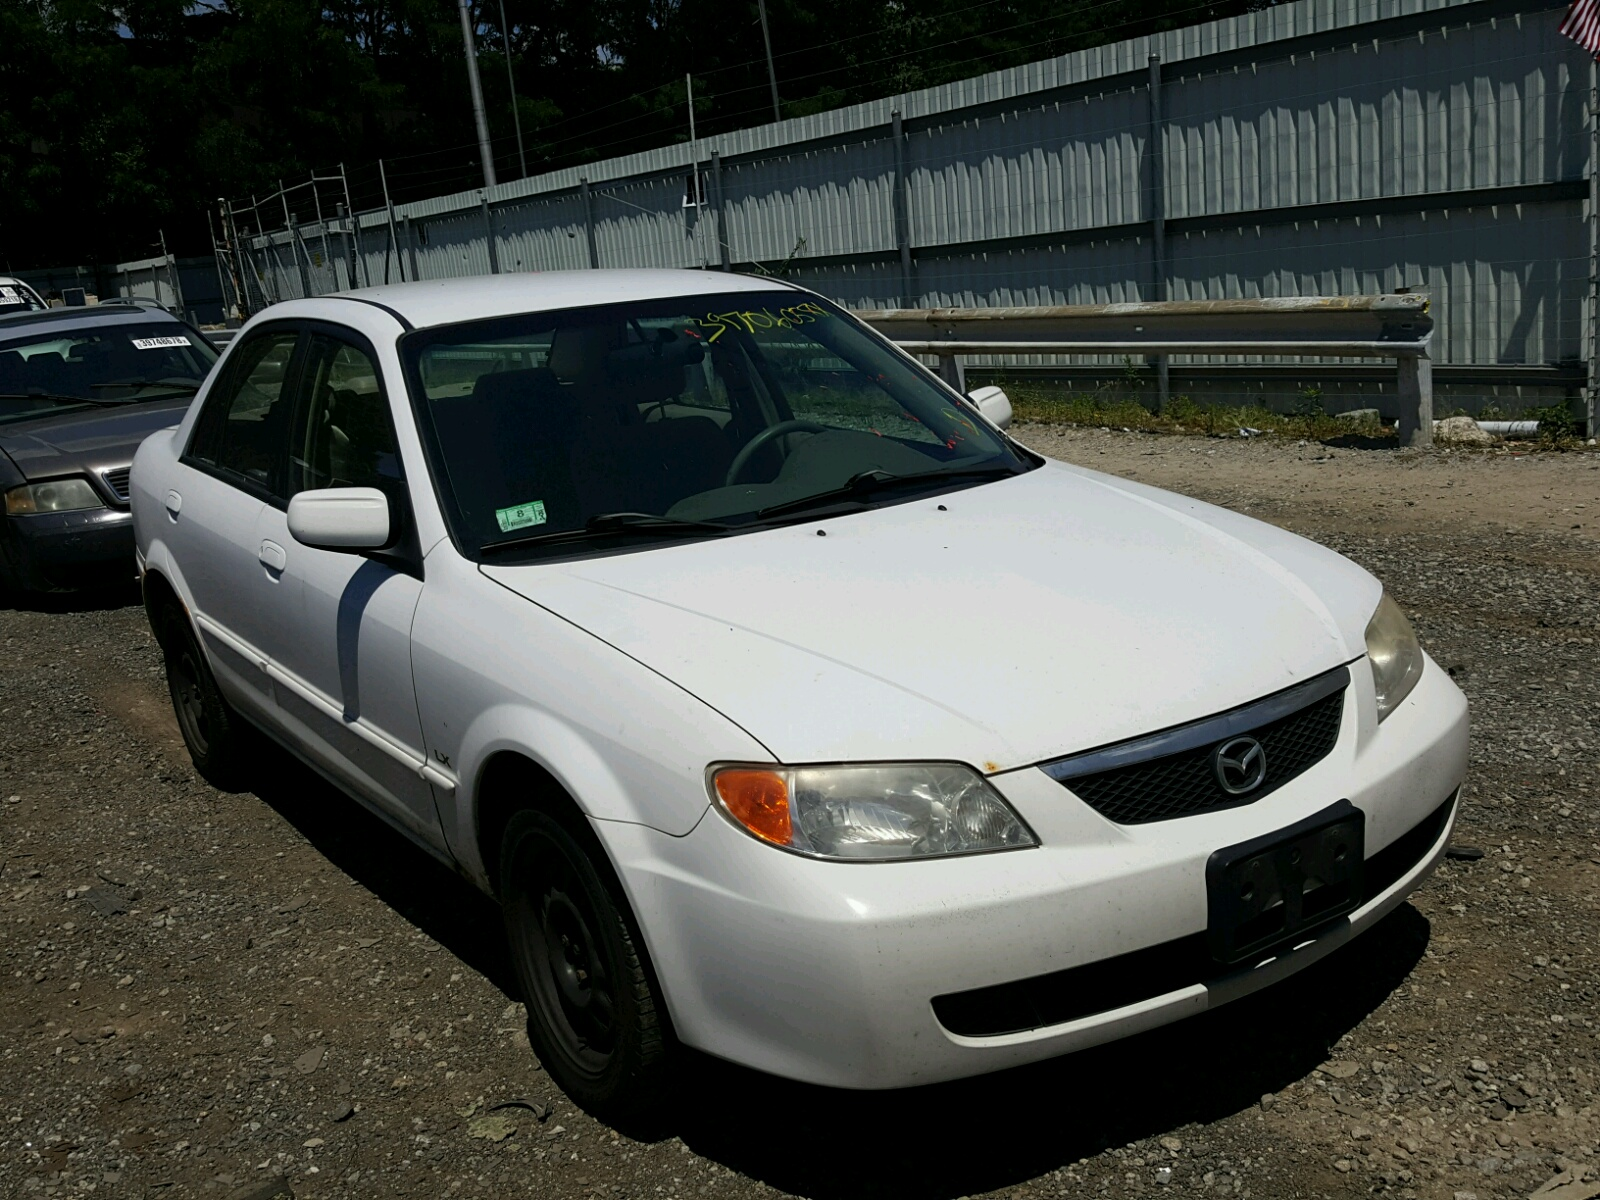 Jm1bj225220515286 2002 White Mazda Protege Dx On Sale In Ma 5 Wagon 20l Left View